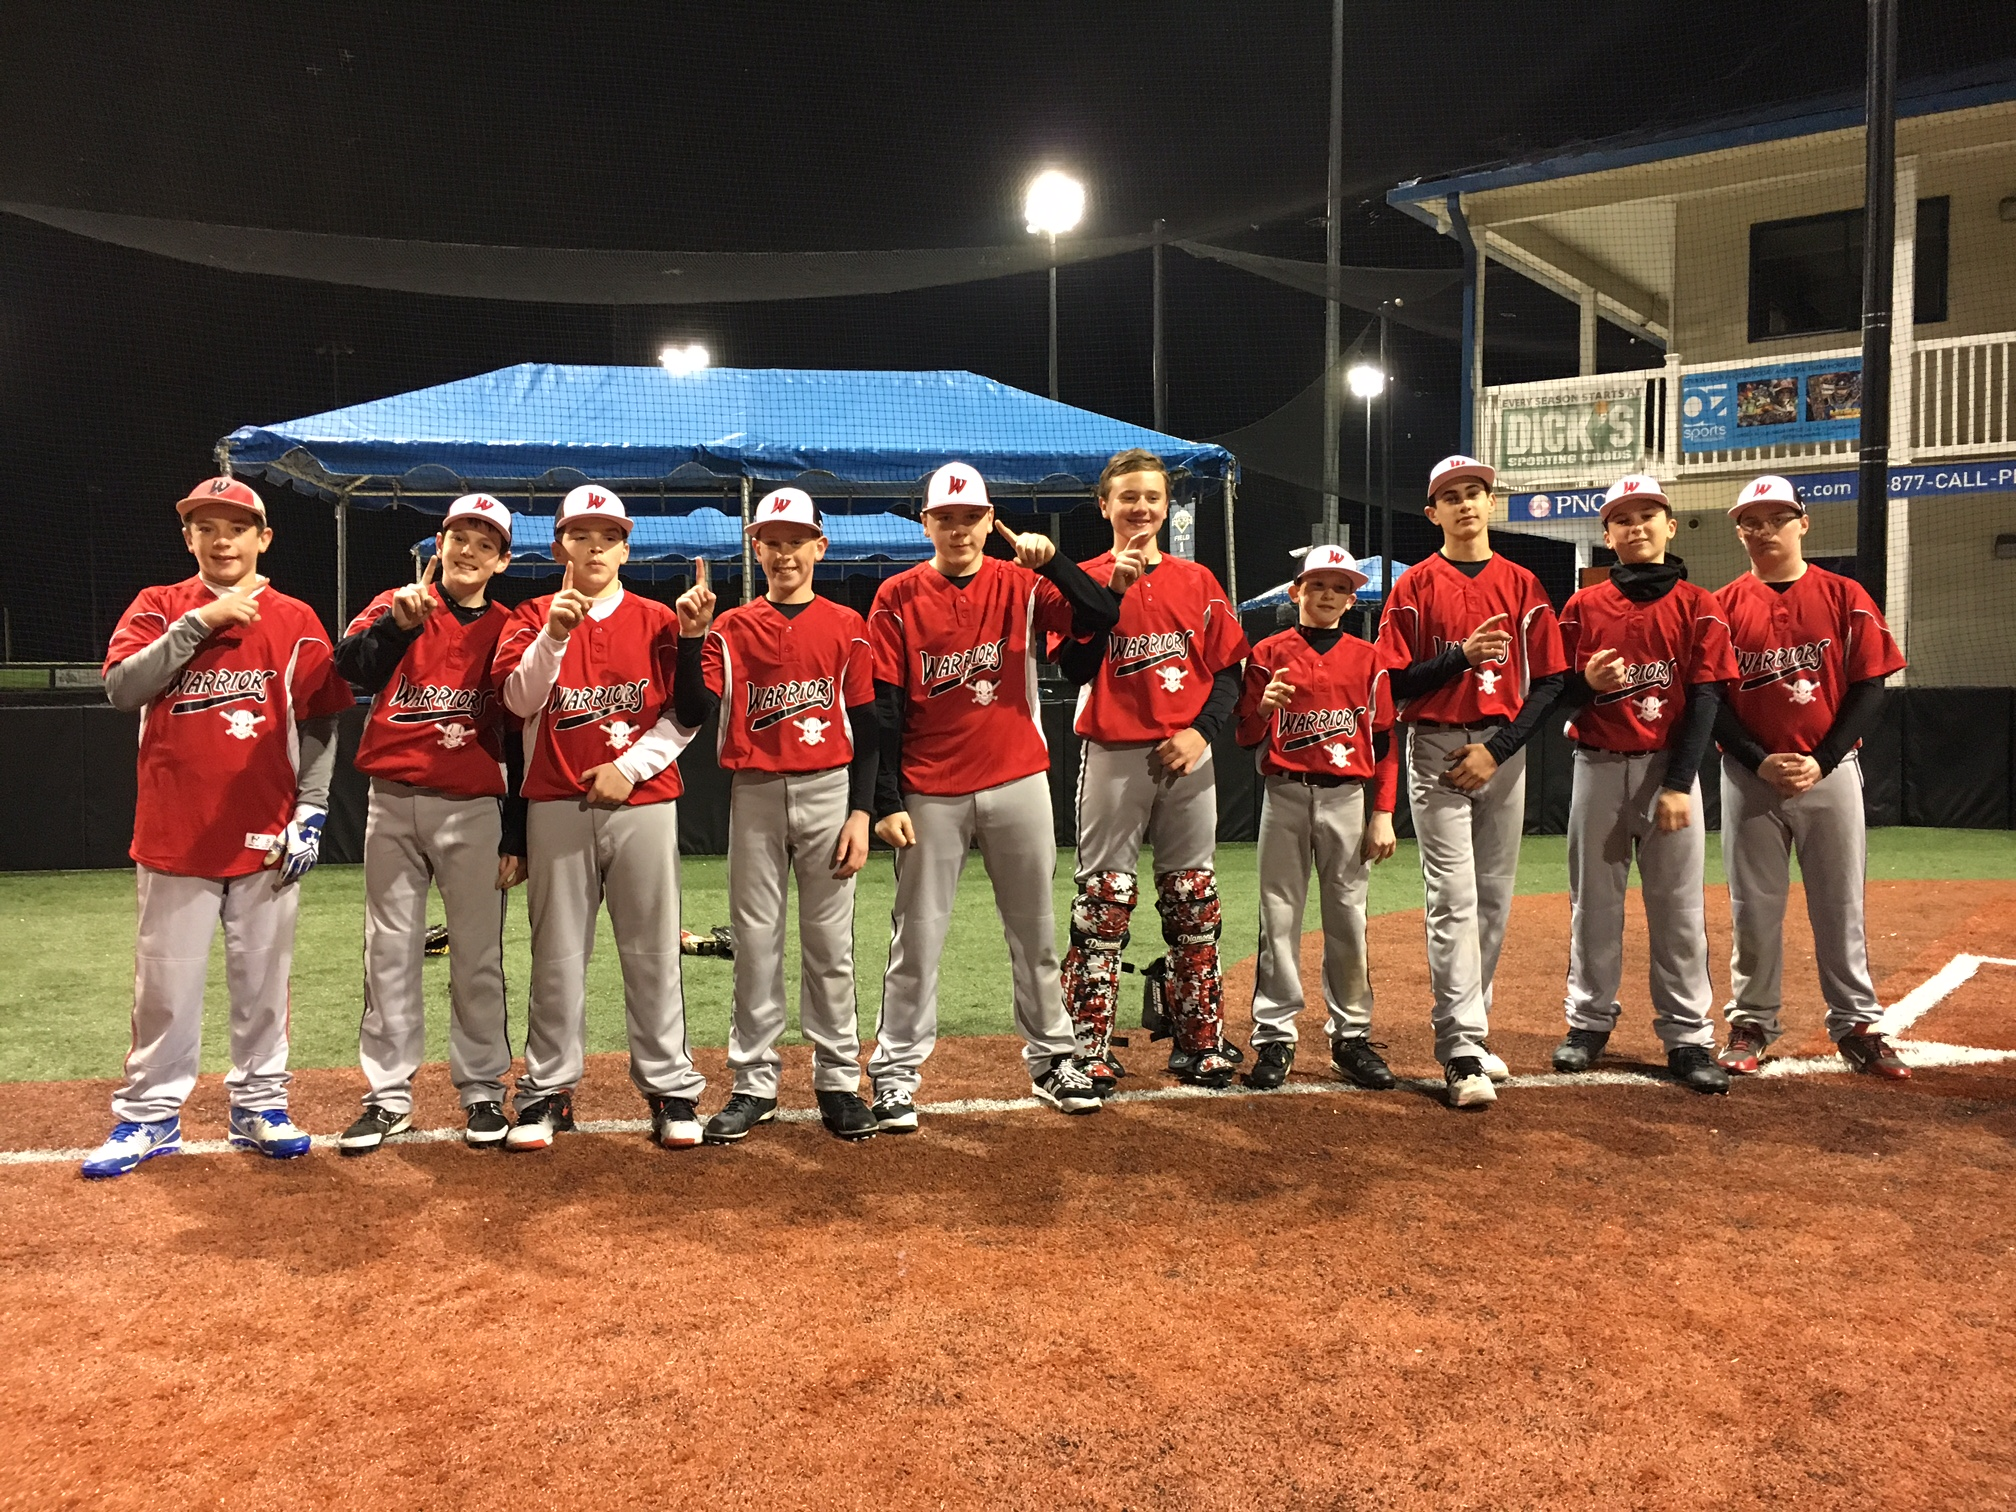 12U SOUTH JERSEY WARRIORS